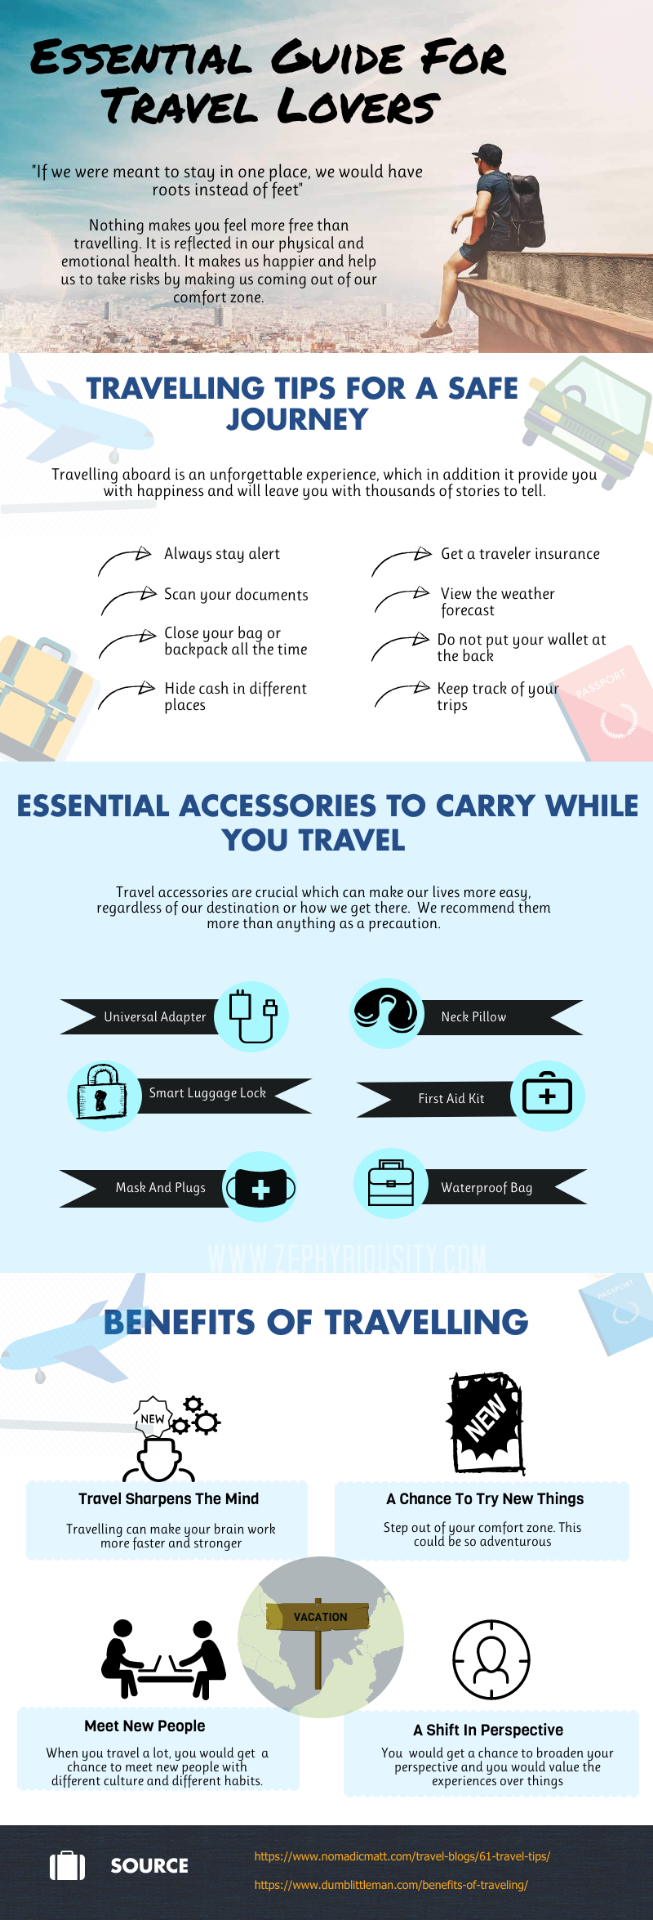 Essential Guide for Travel Lovers